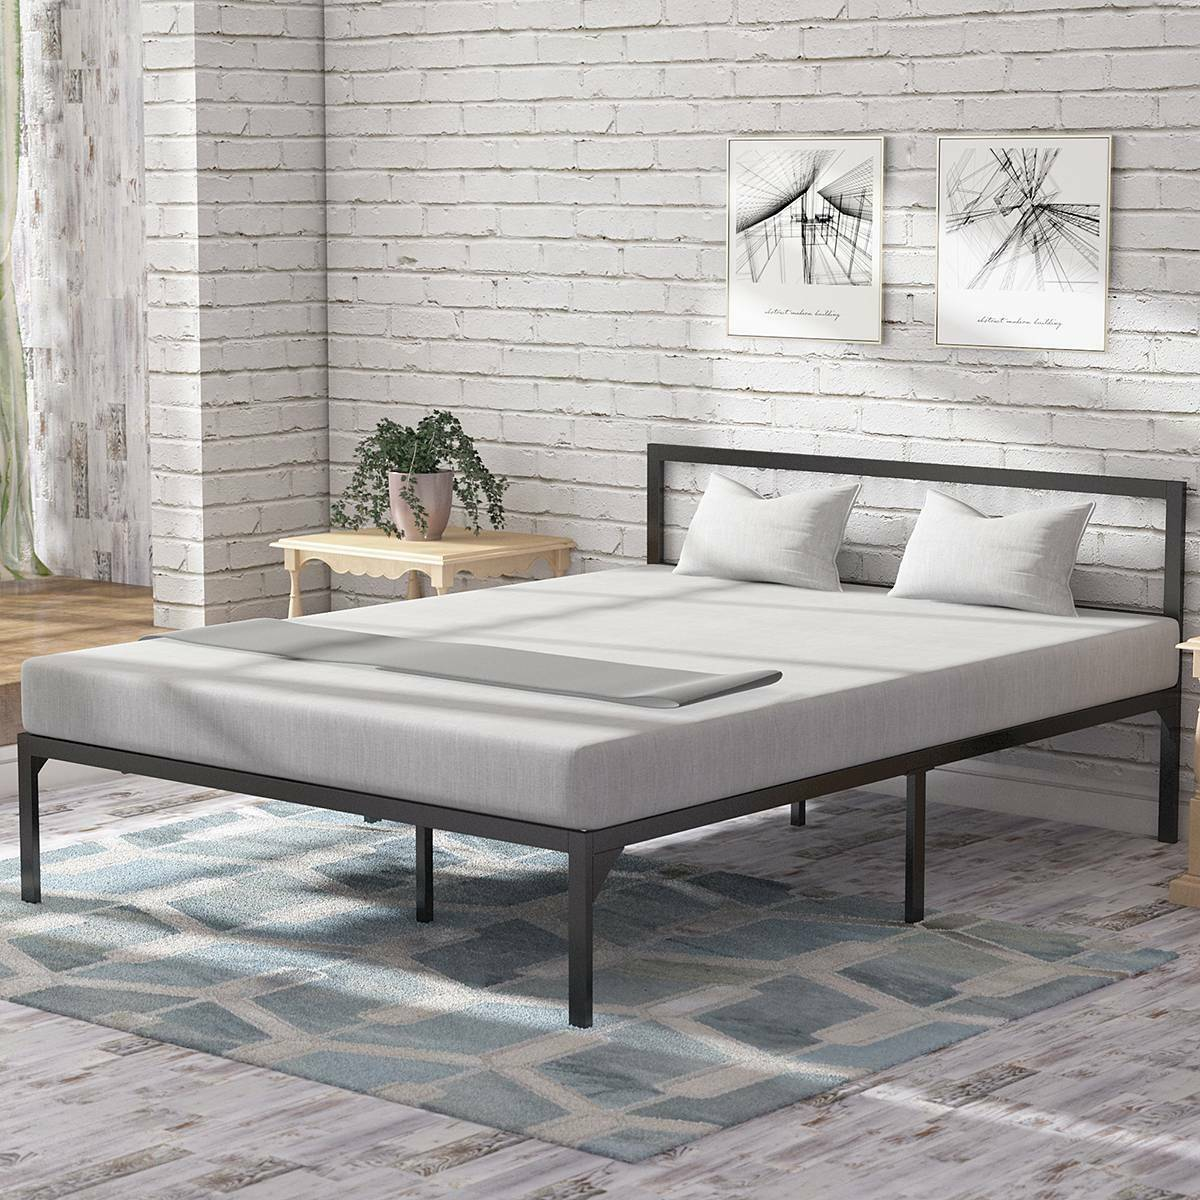 Picture of: Yitahome Queen Size Platform Bed Frame Mattress Foundation With Headboard Wood For Sale Online